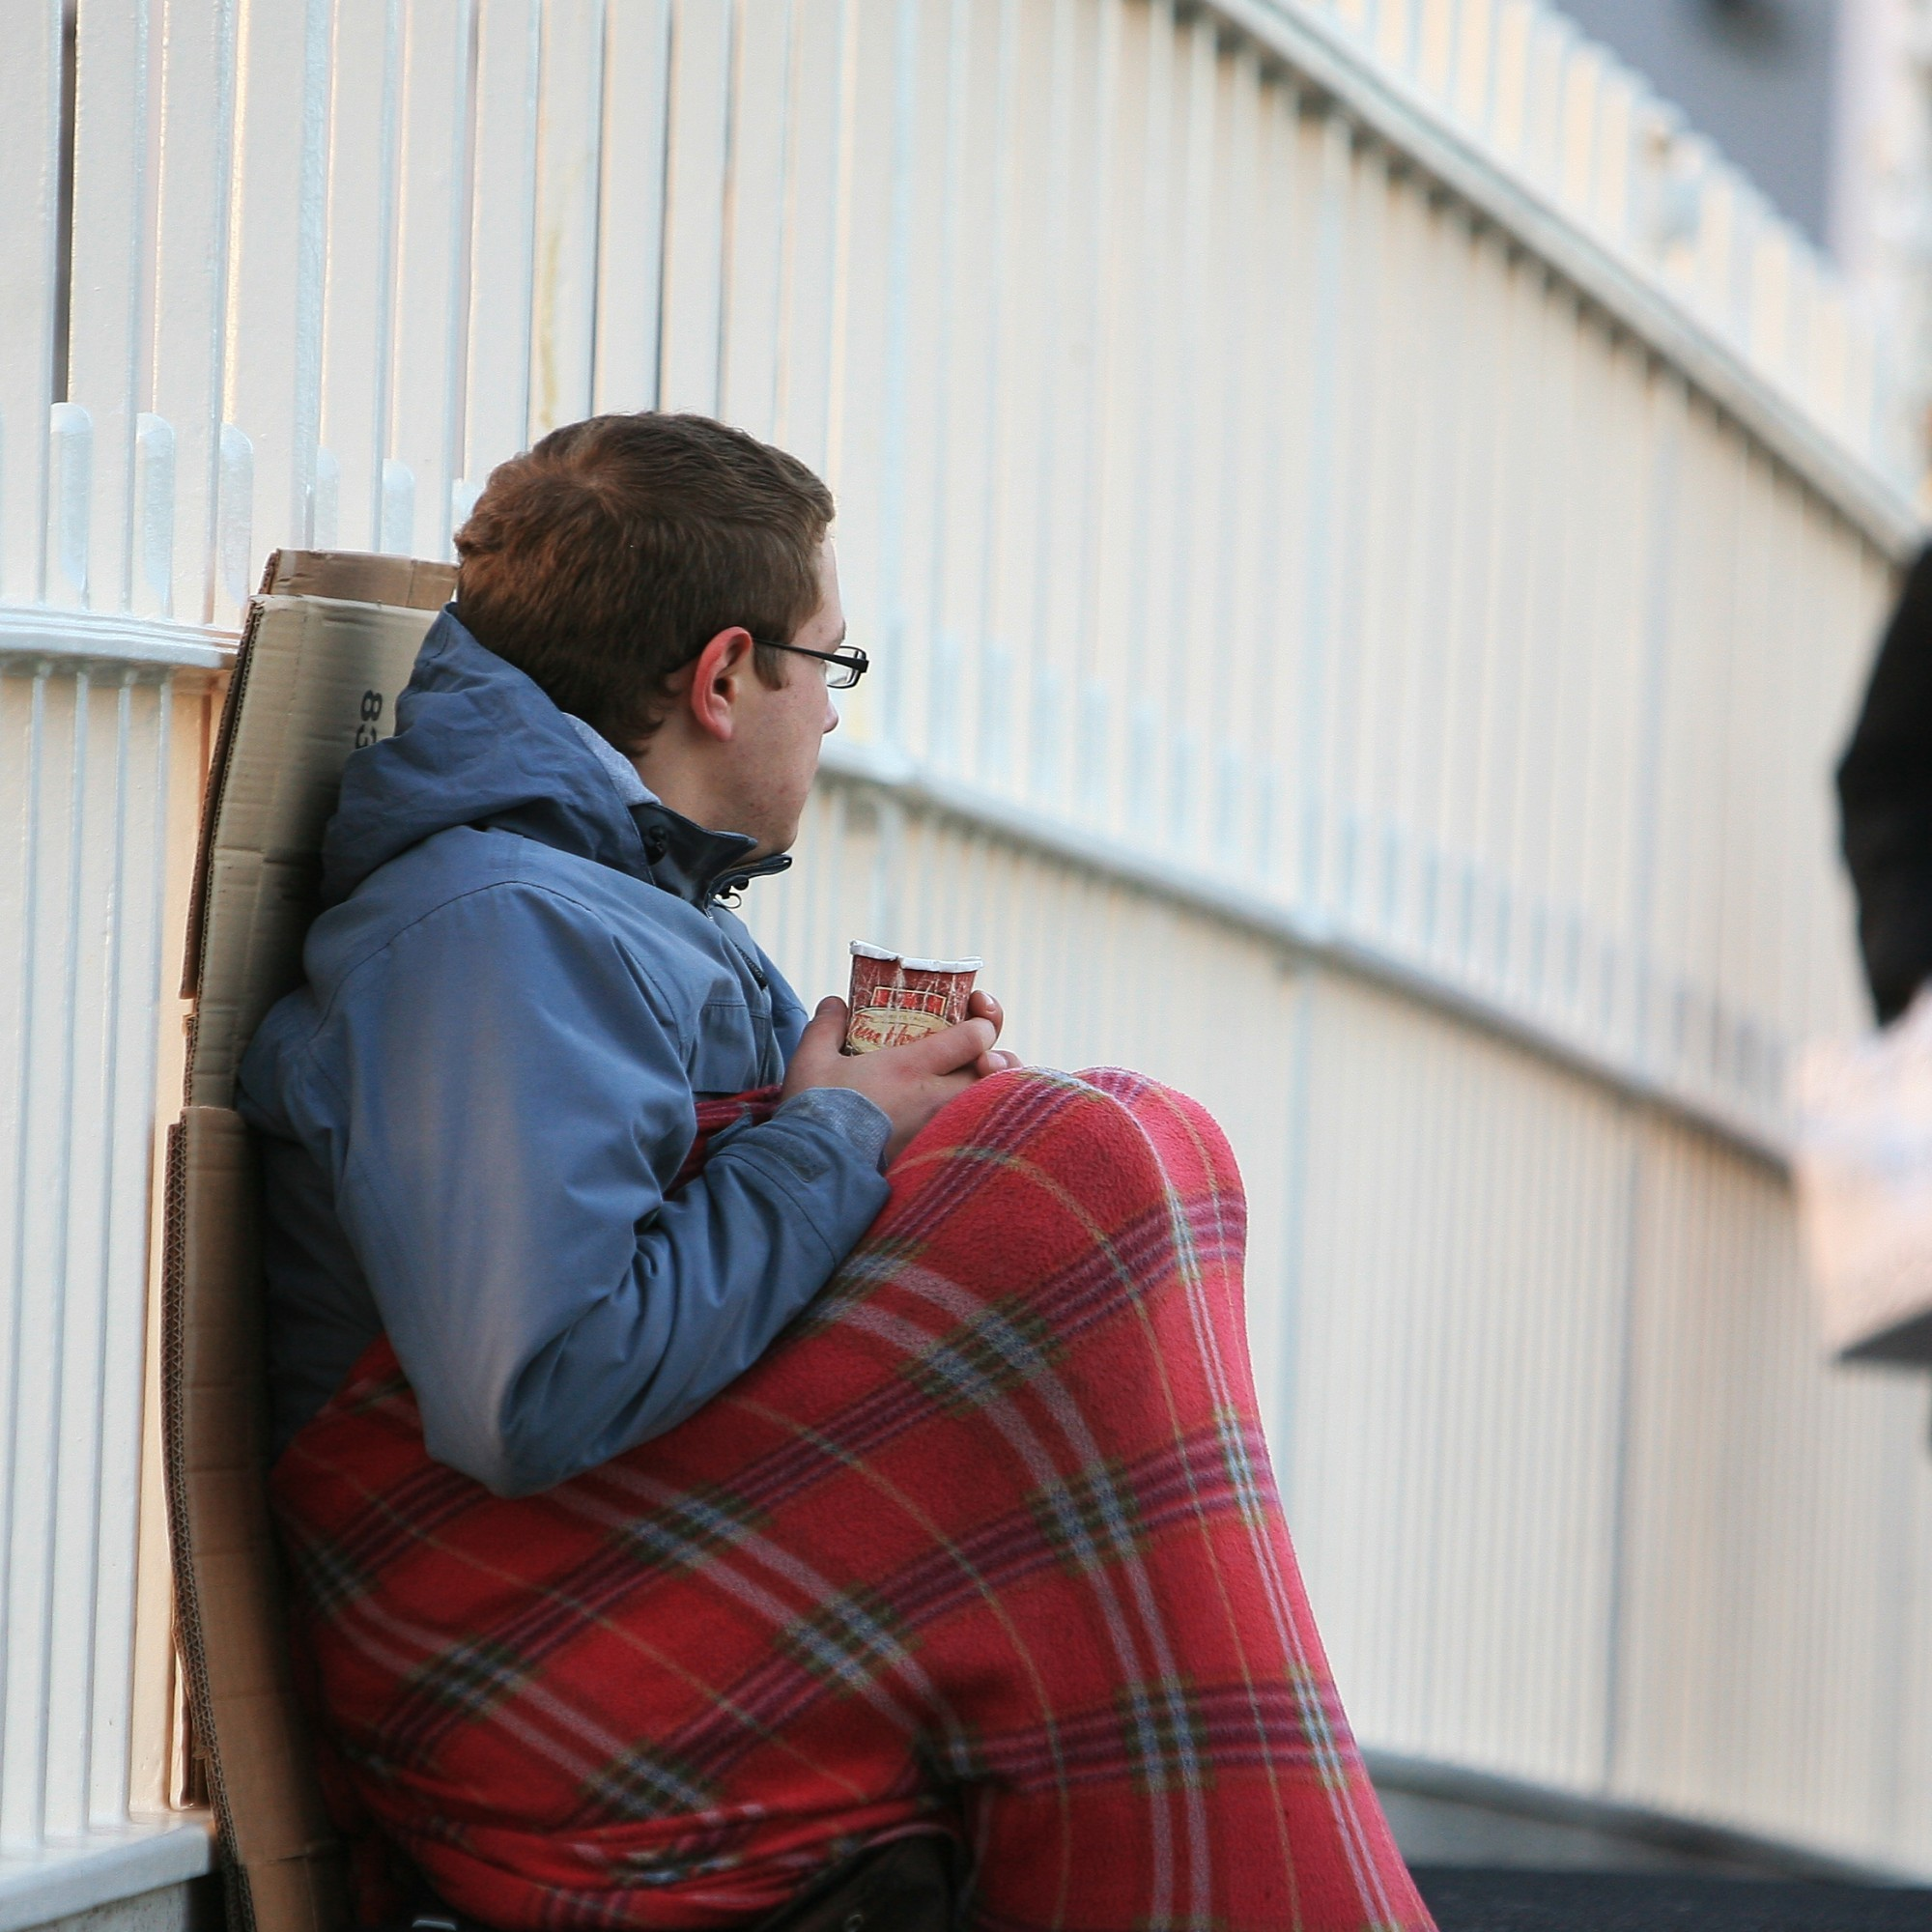 Homeless children staying in adult hostels to 'avoid risk of sleeping rough'